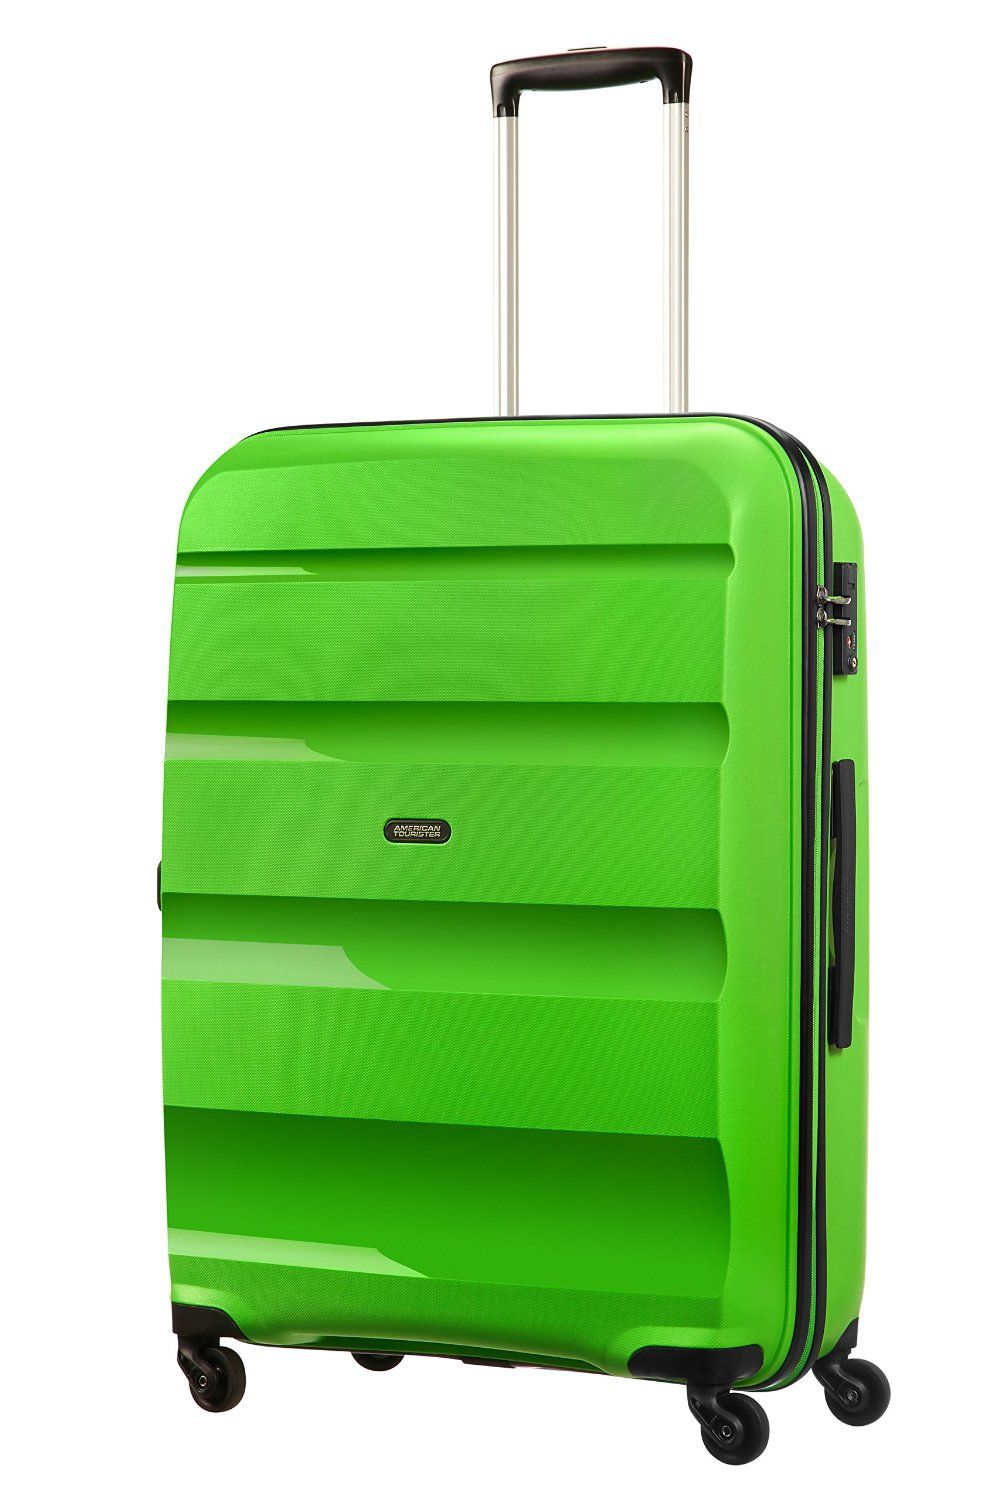 This Is American Tourister Suitcase In Cabin Luggage Handbags With A Dimension Of 75 Cm 91 Liters Pop Green Bon Air American Tourister Suitcase